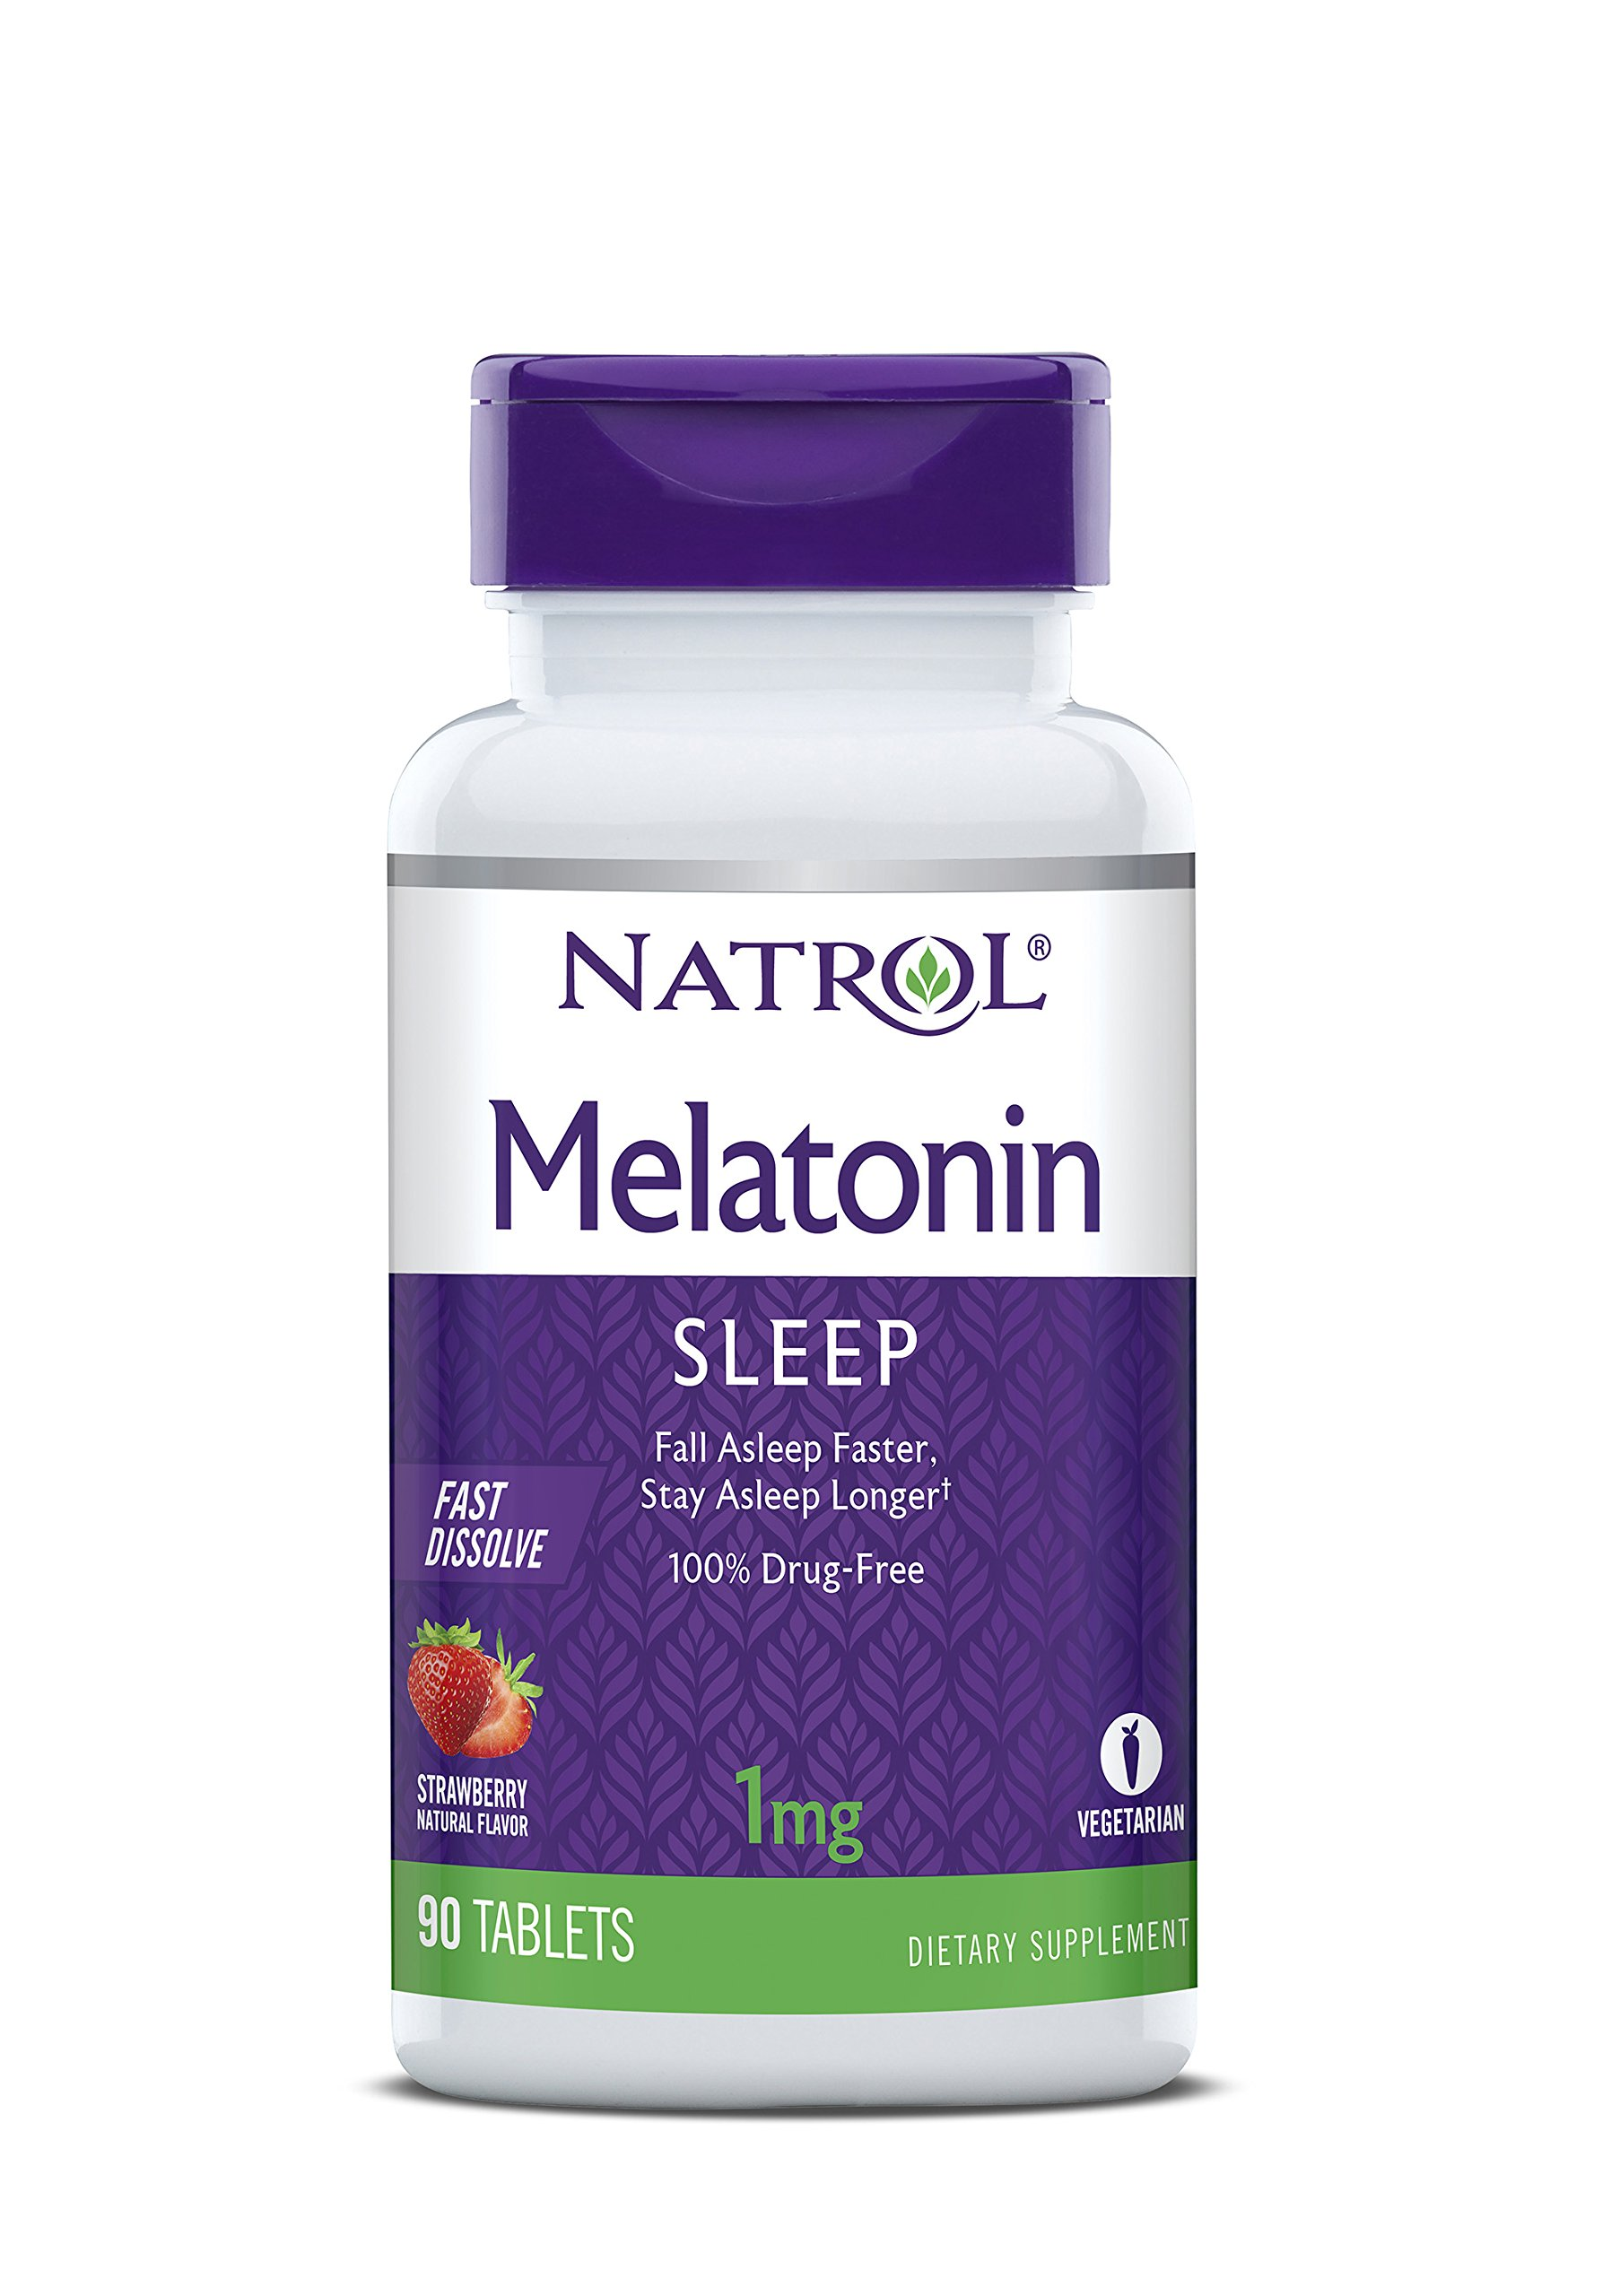 Natrol Melatonin Fast Dissolve Tablets, Strawberry Flavor, 1mg, 90 Count product image